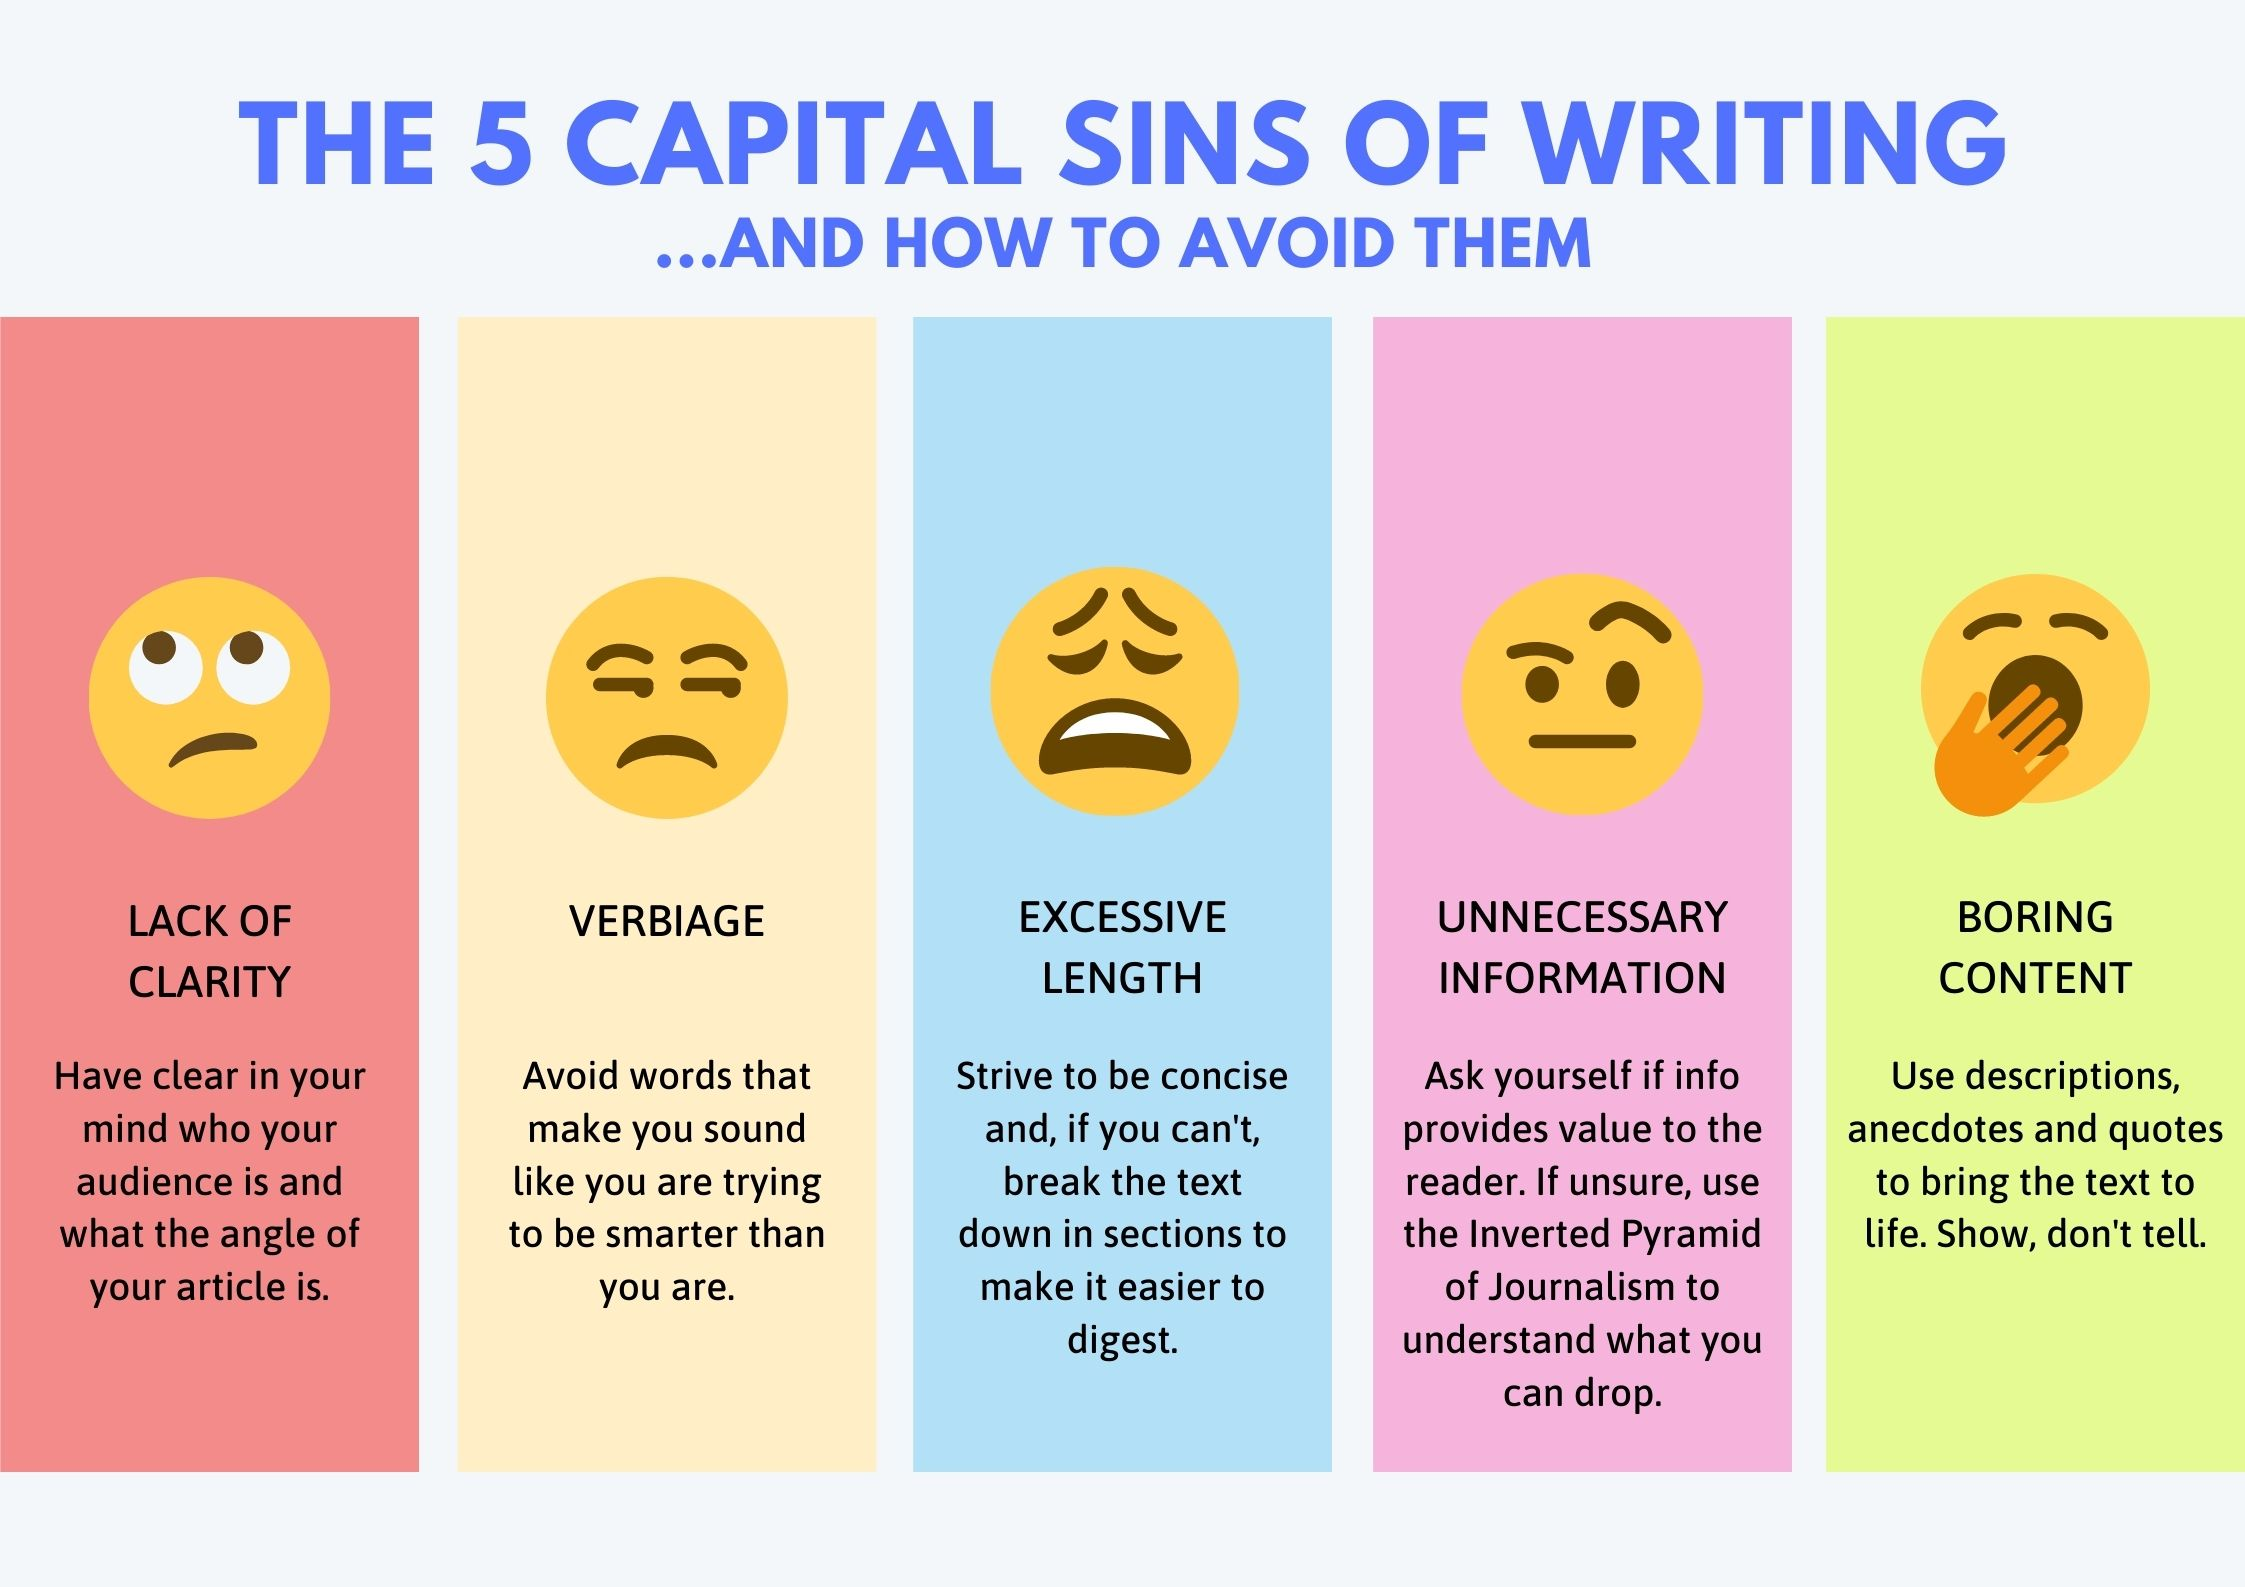 The 5 capital sins of writing